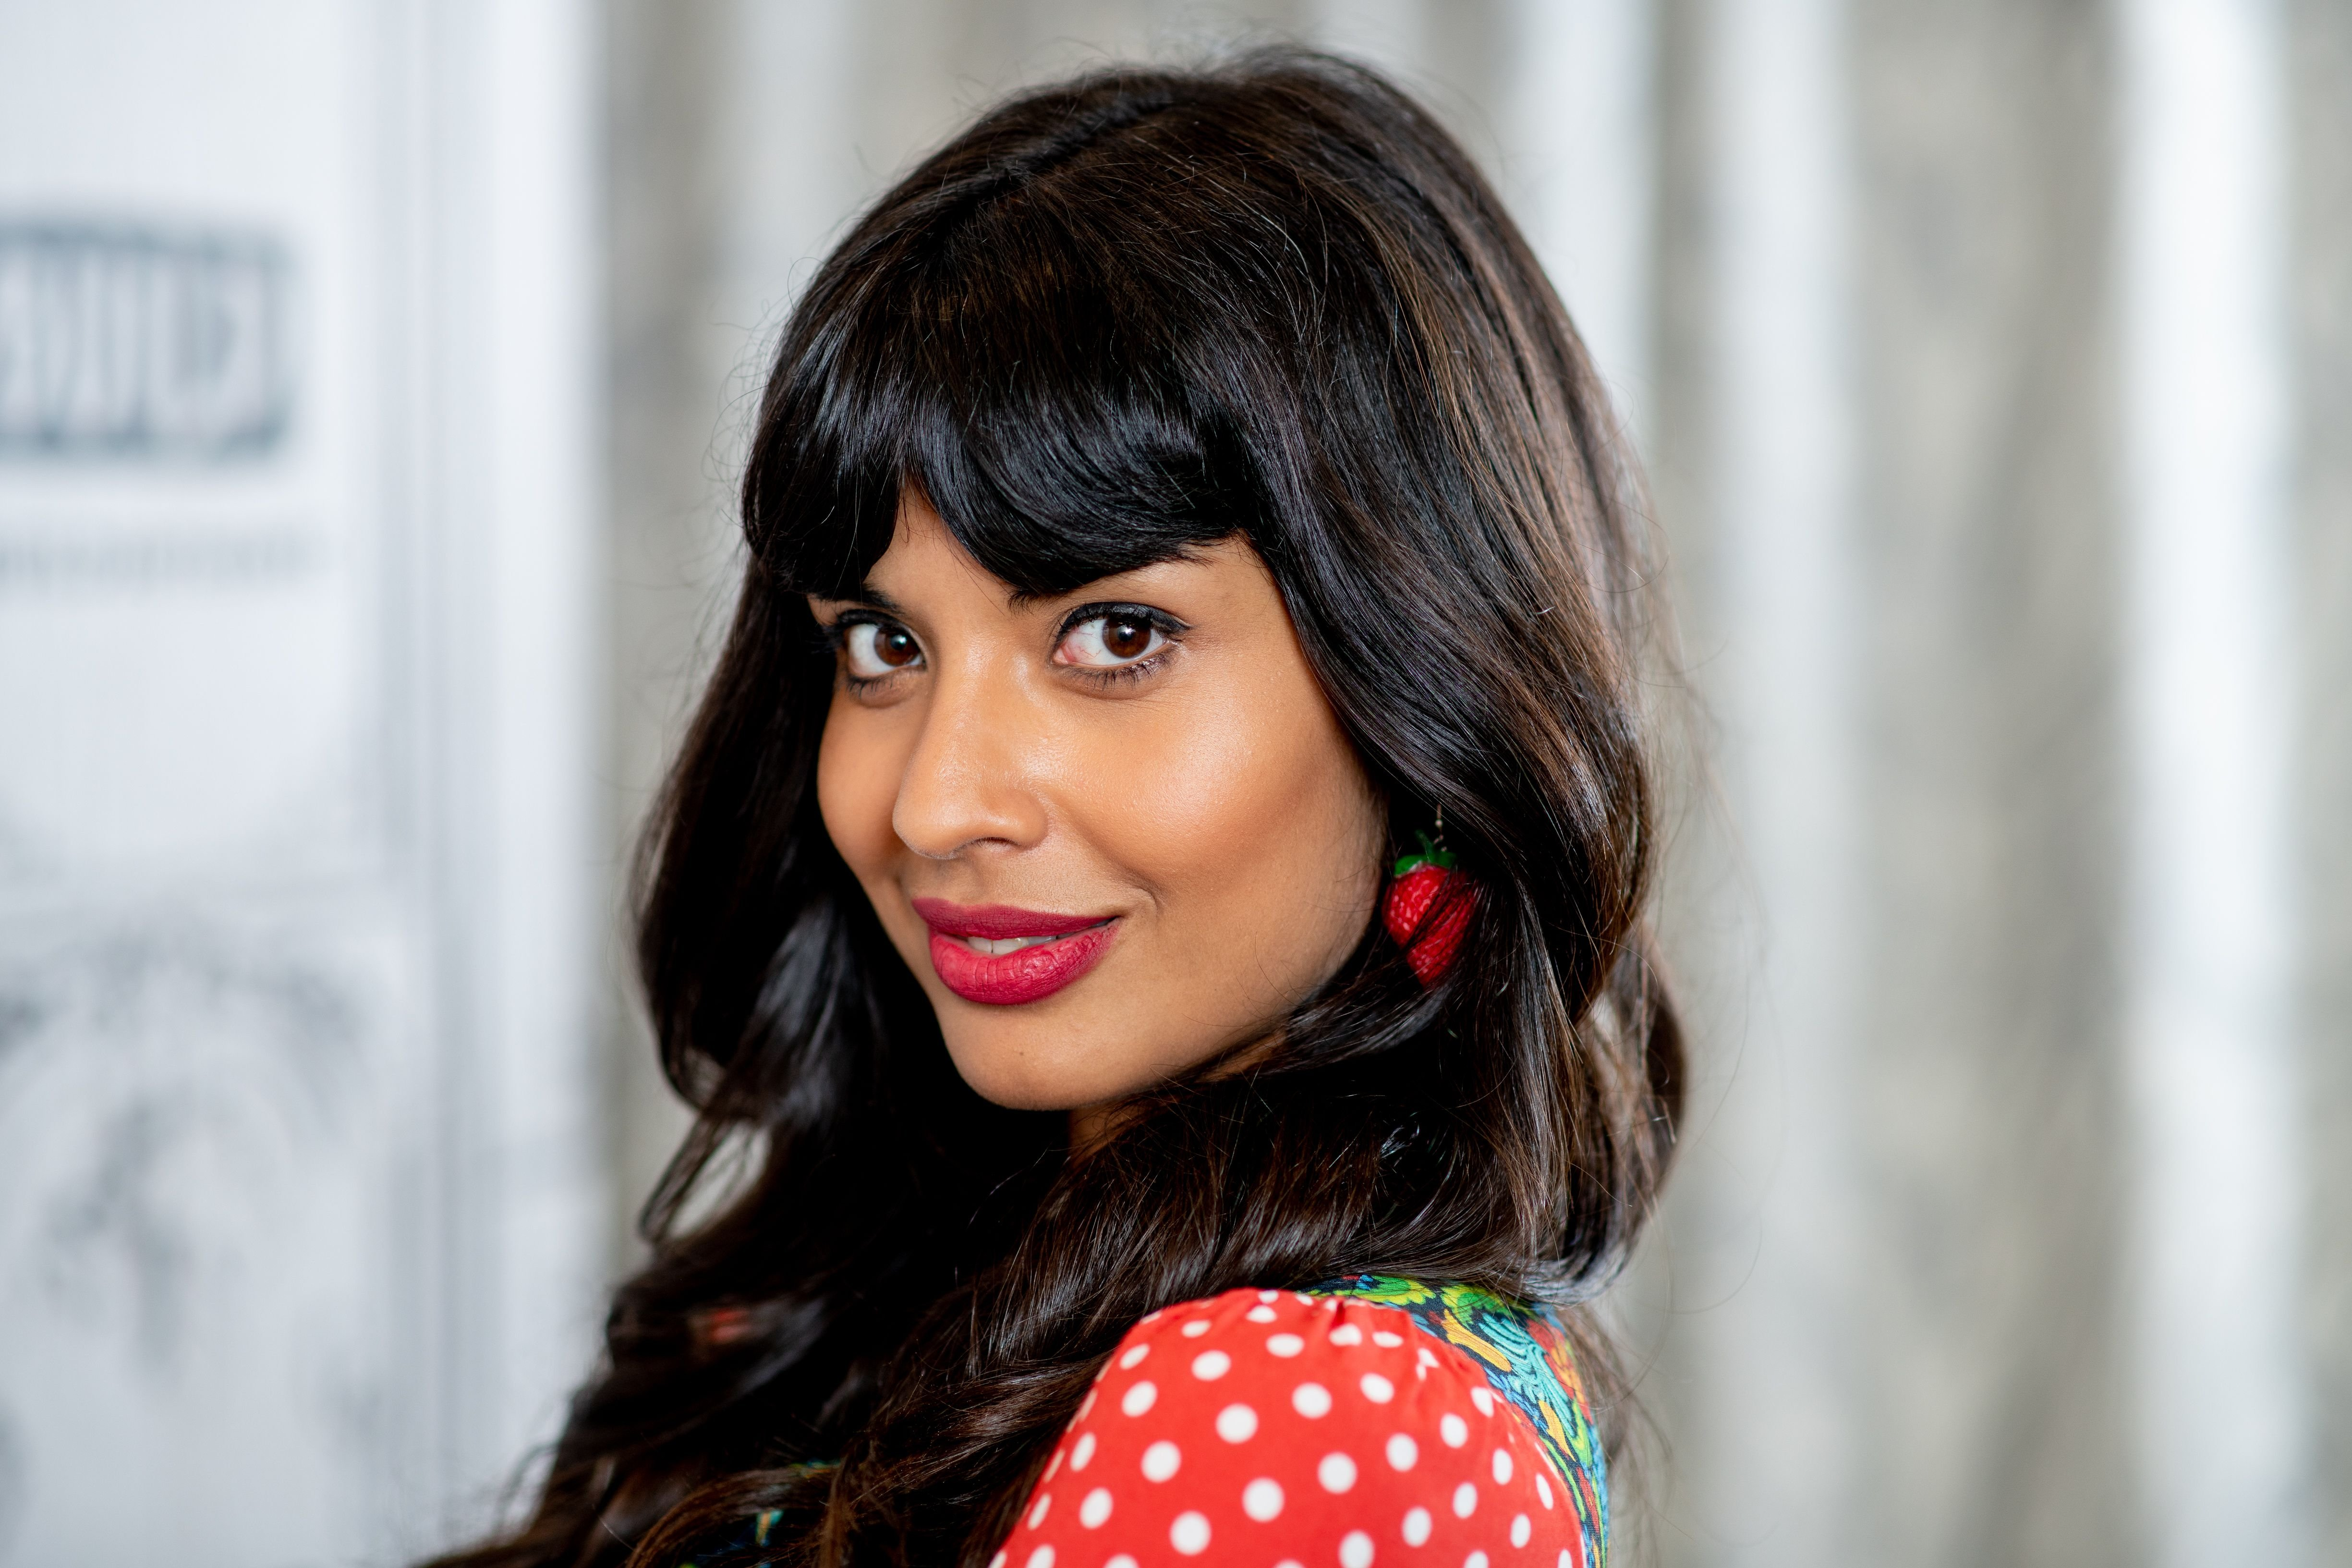 Jameela Jamil at Build Studio in October 2018 in New York City   Source: Getty Images